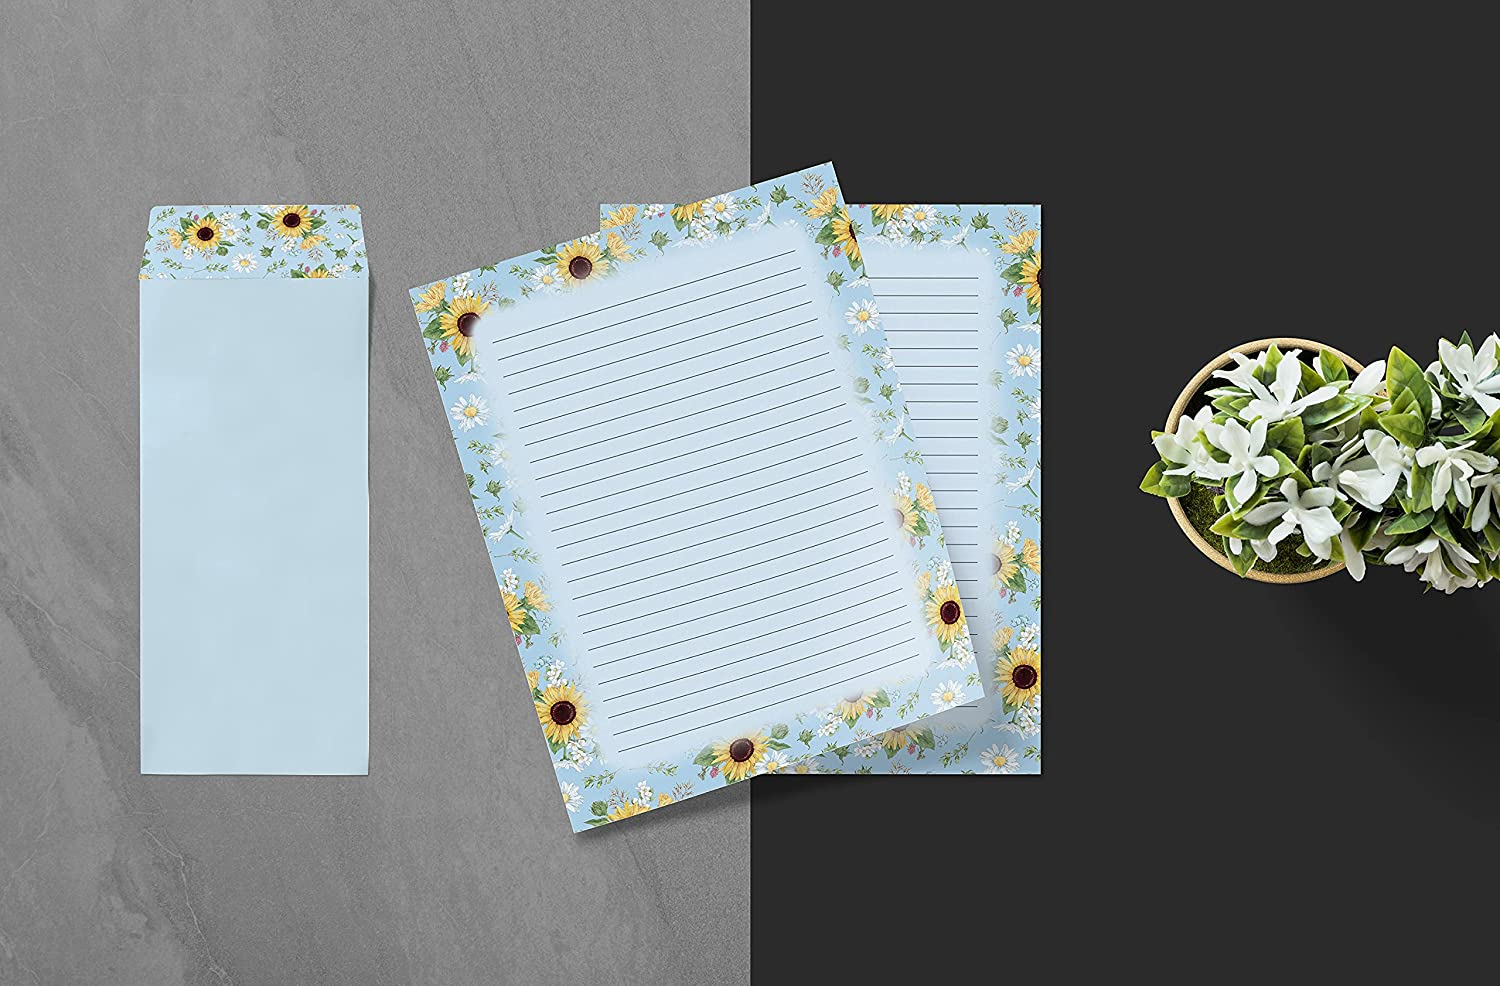 Floral Paper Stationery Set, 100 Piece Set (50 Lined Sheets + 50 Matching Envelopes), Letter Size 8.5 x 11 inch, 6 Designs, Double Sided/Lined Printing Paper, by Better Office Products : Office Products